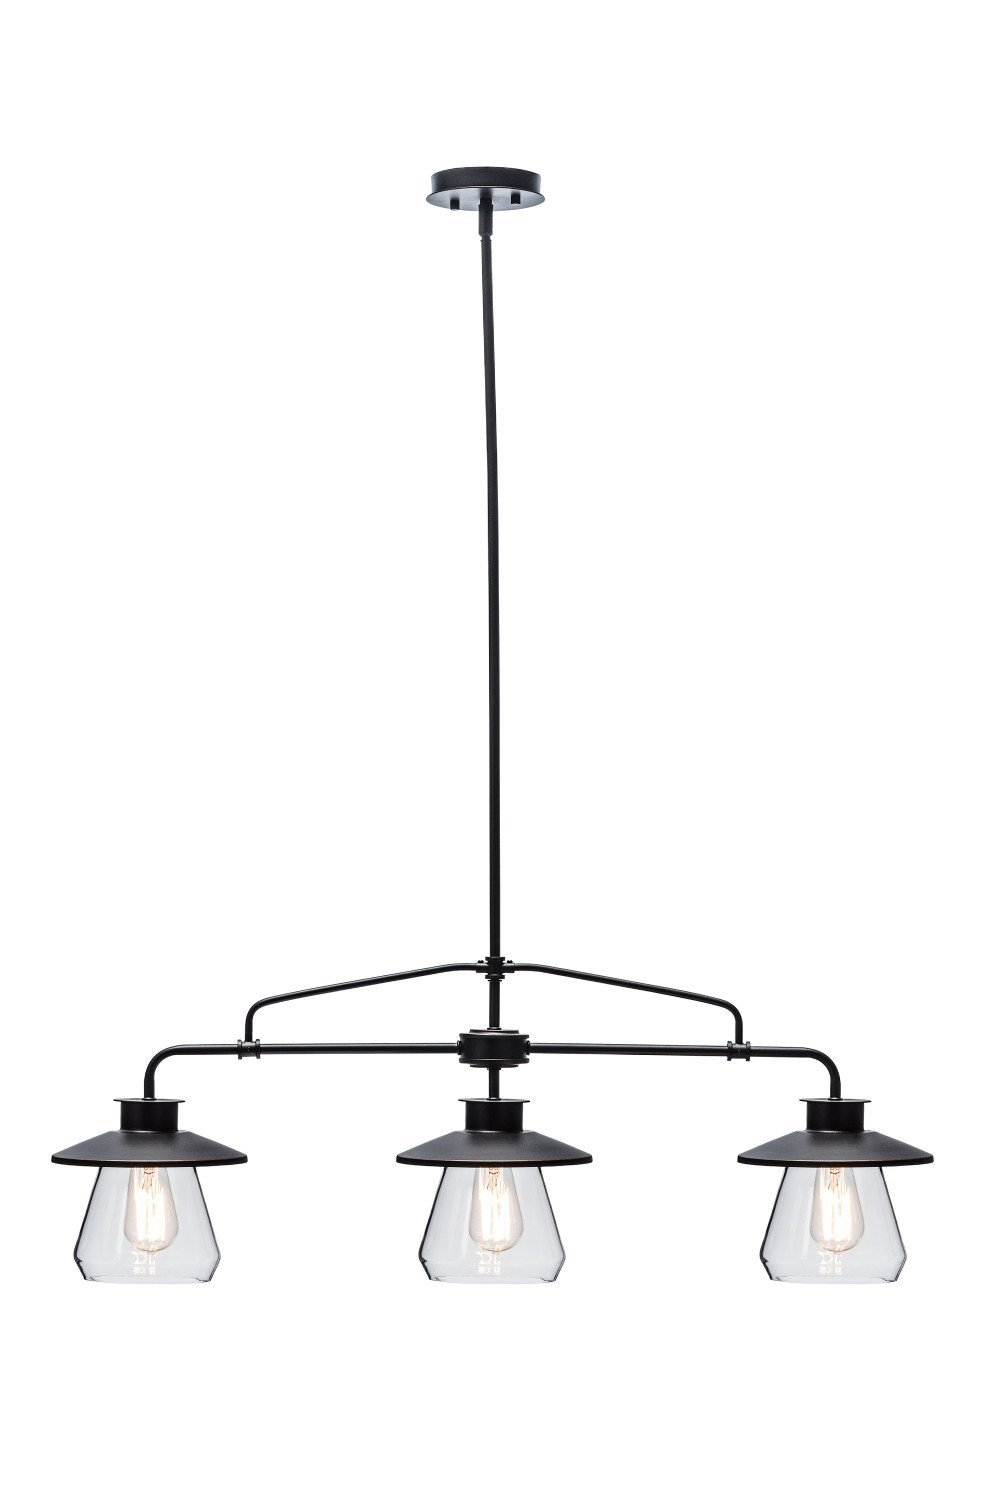 Globe Electric 3-Light Vintage Pendant, Oil Rubbed Bronze Finish, Clear Glass Shades, 64845